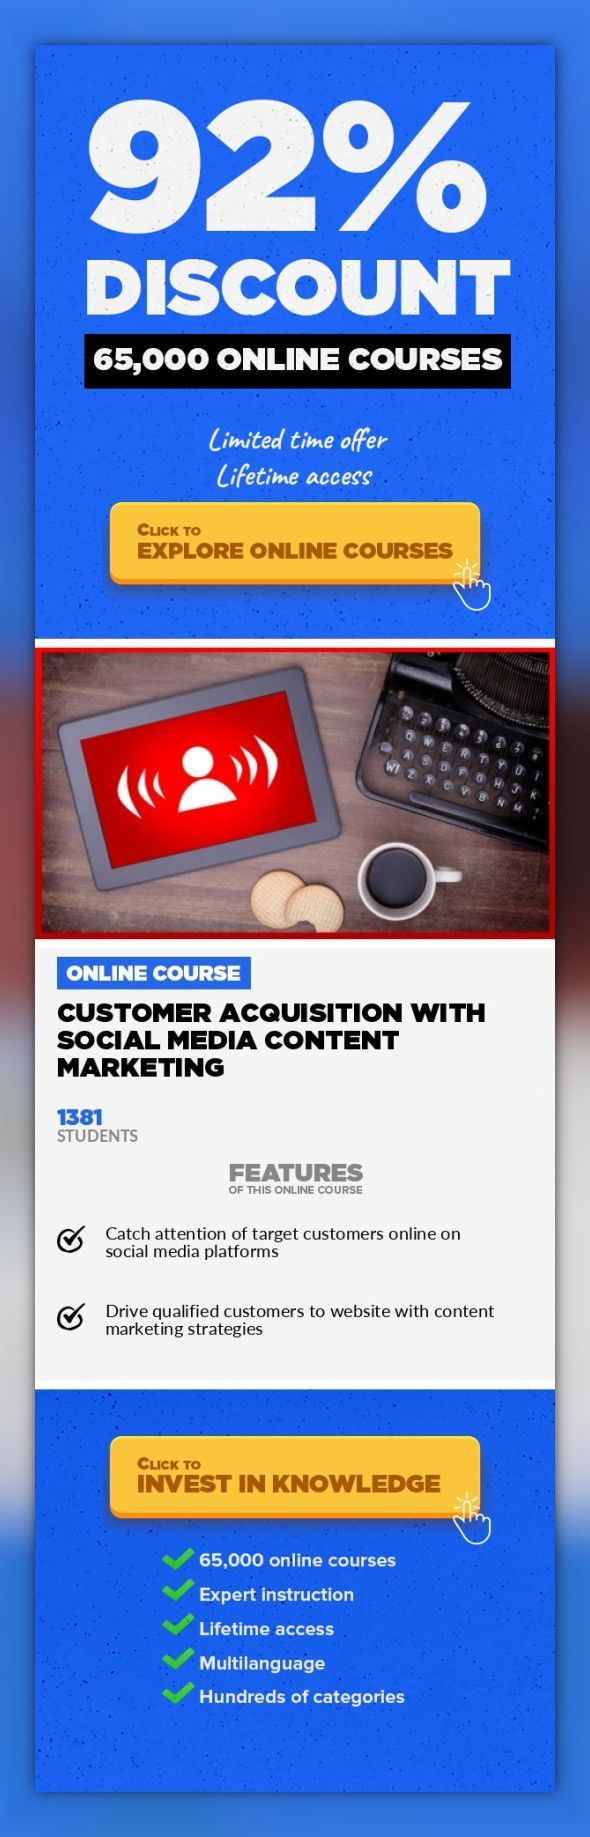 Customer Acquisition with Social Media Content Marketing Sales, Business #online …